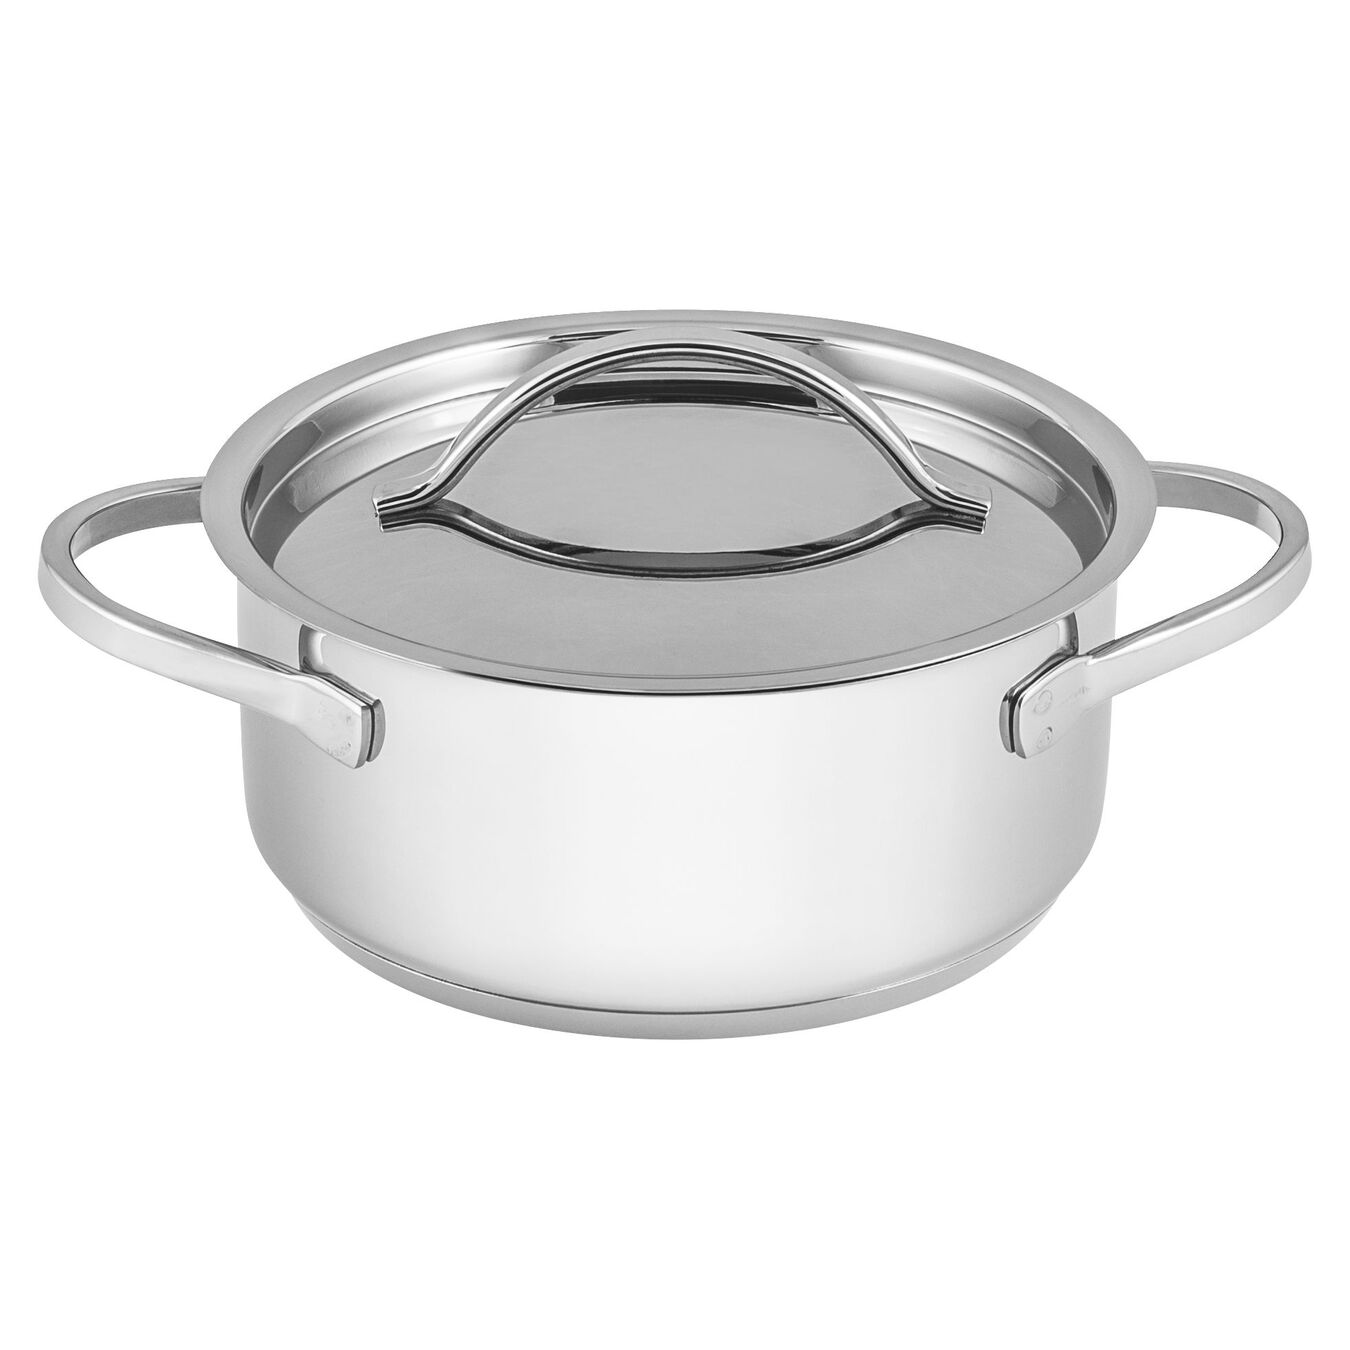 4-pc Stainless Steel Mini Dutch Oven Set,,large 1